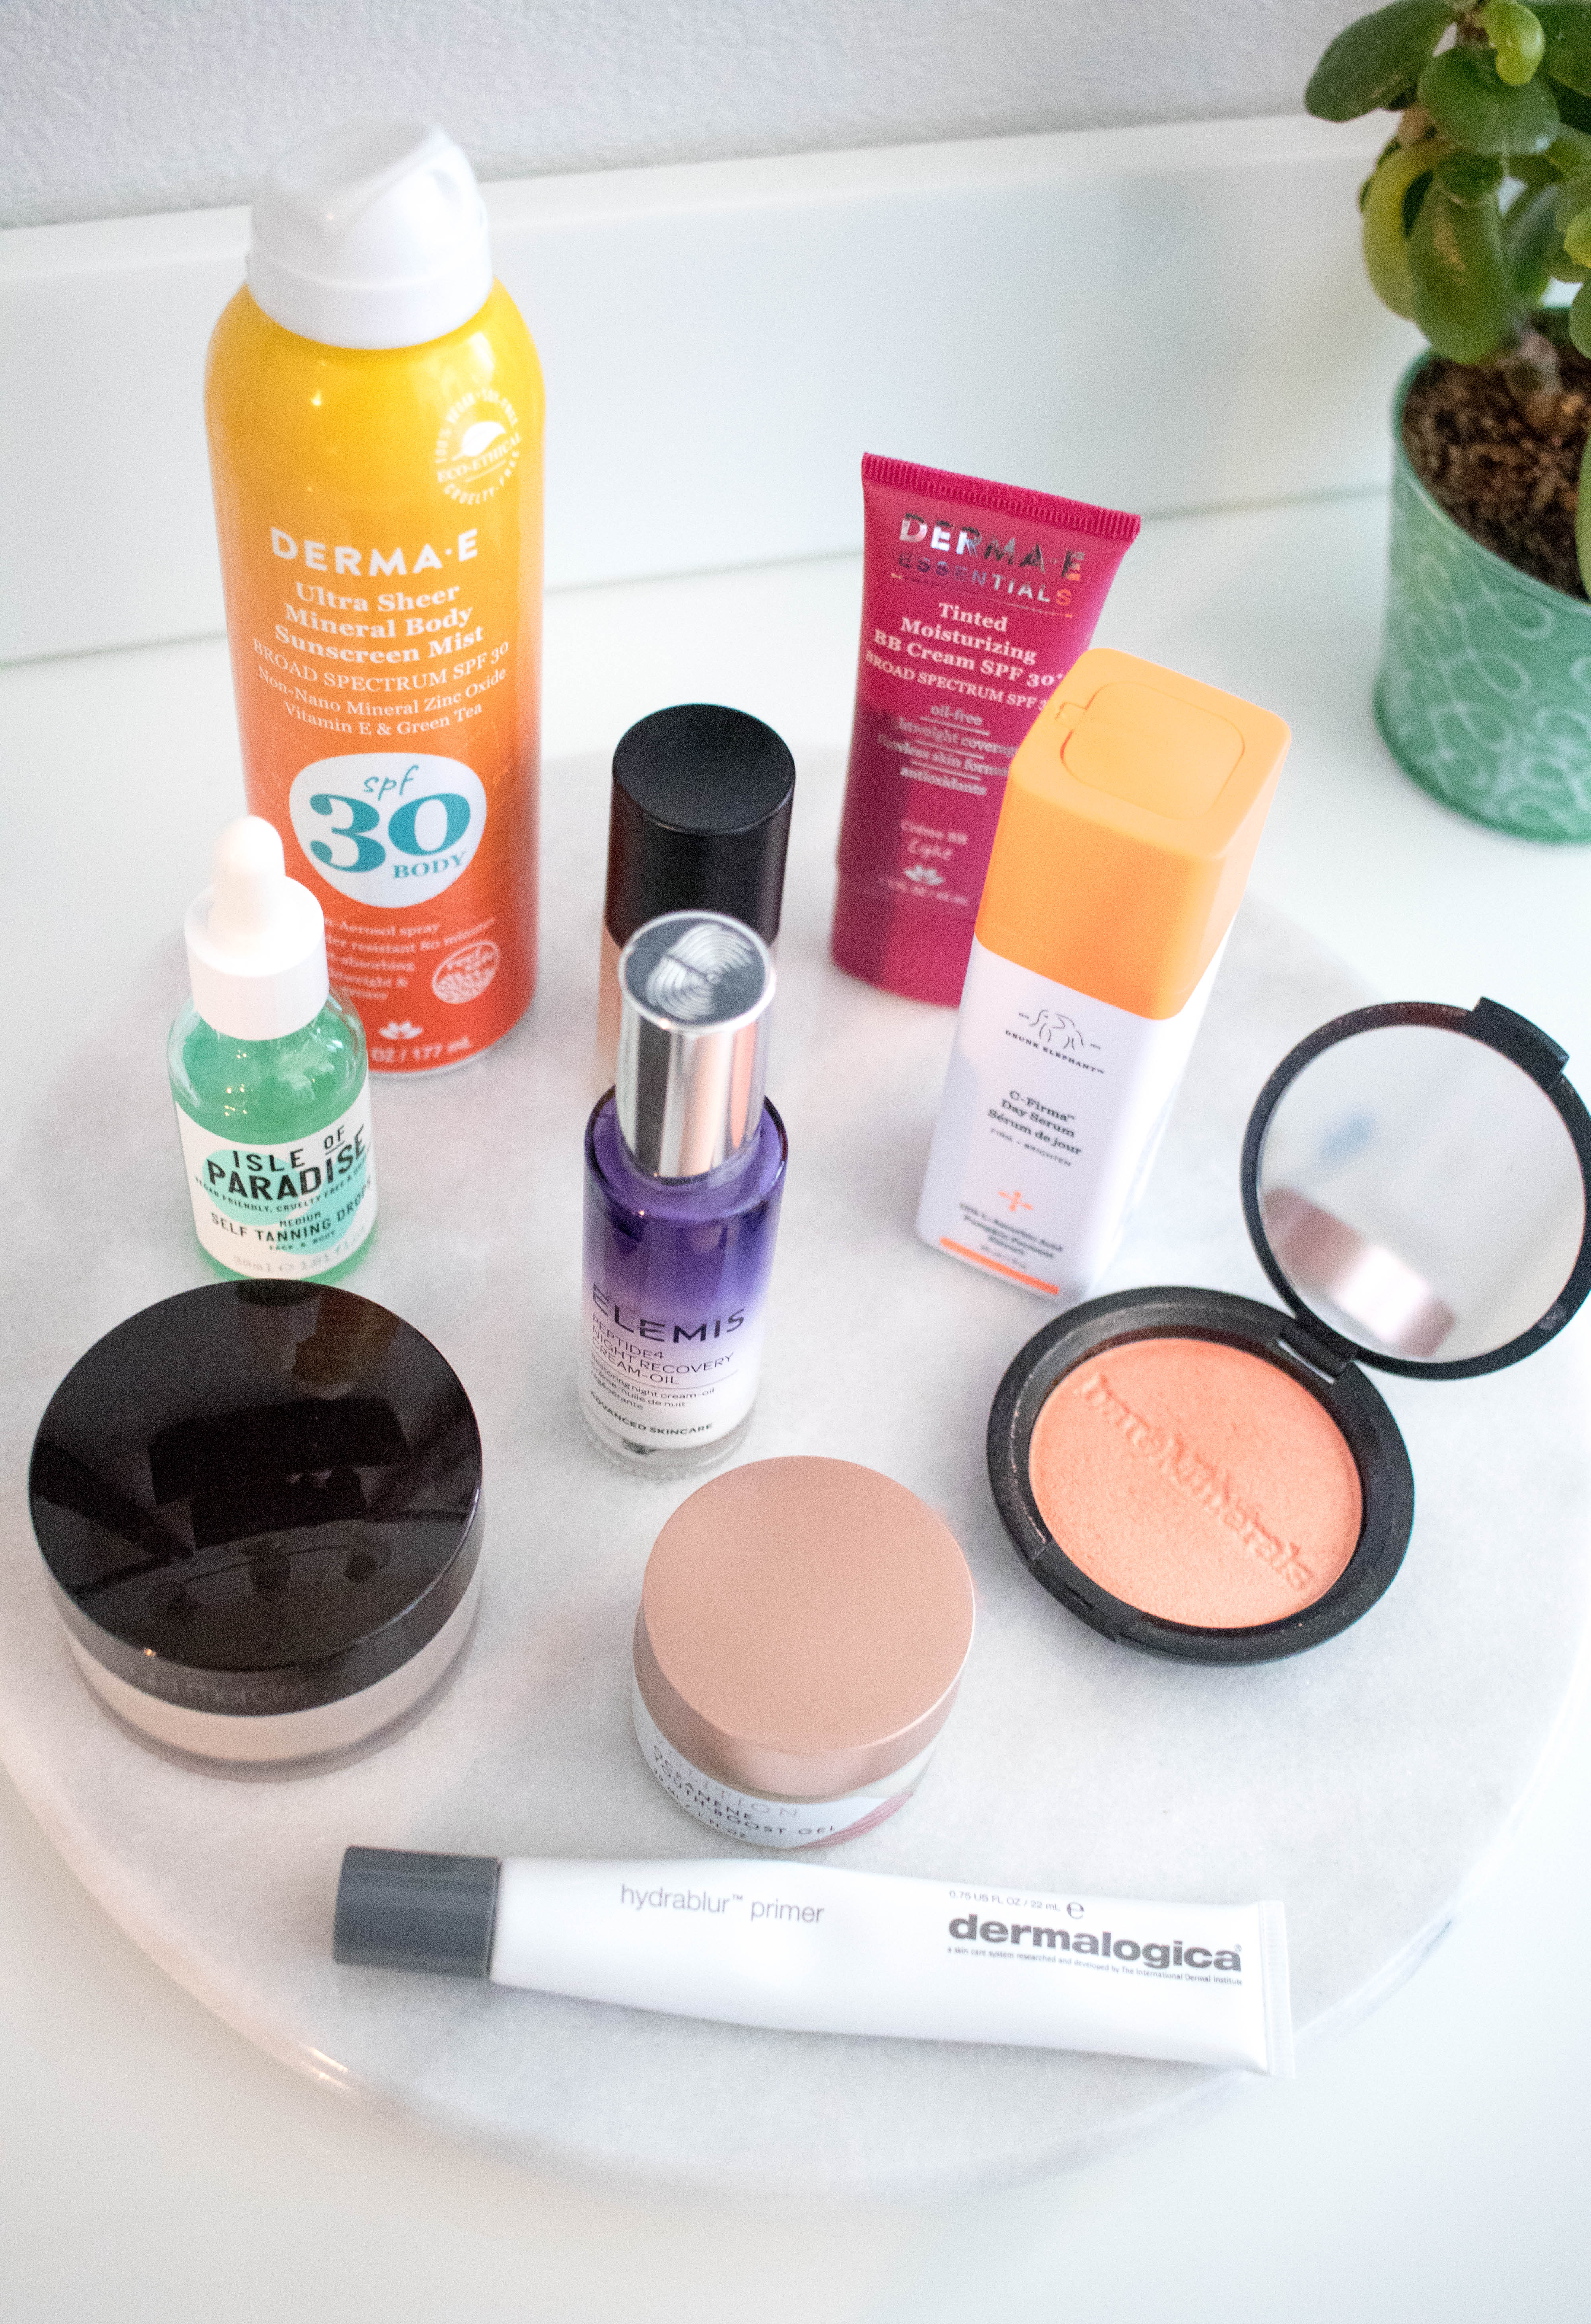 summer beauty hits and misses makeup and skincare product review #beautyproducts #skincareroutine #makeup #cleanbeauty